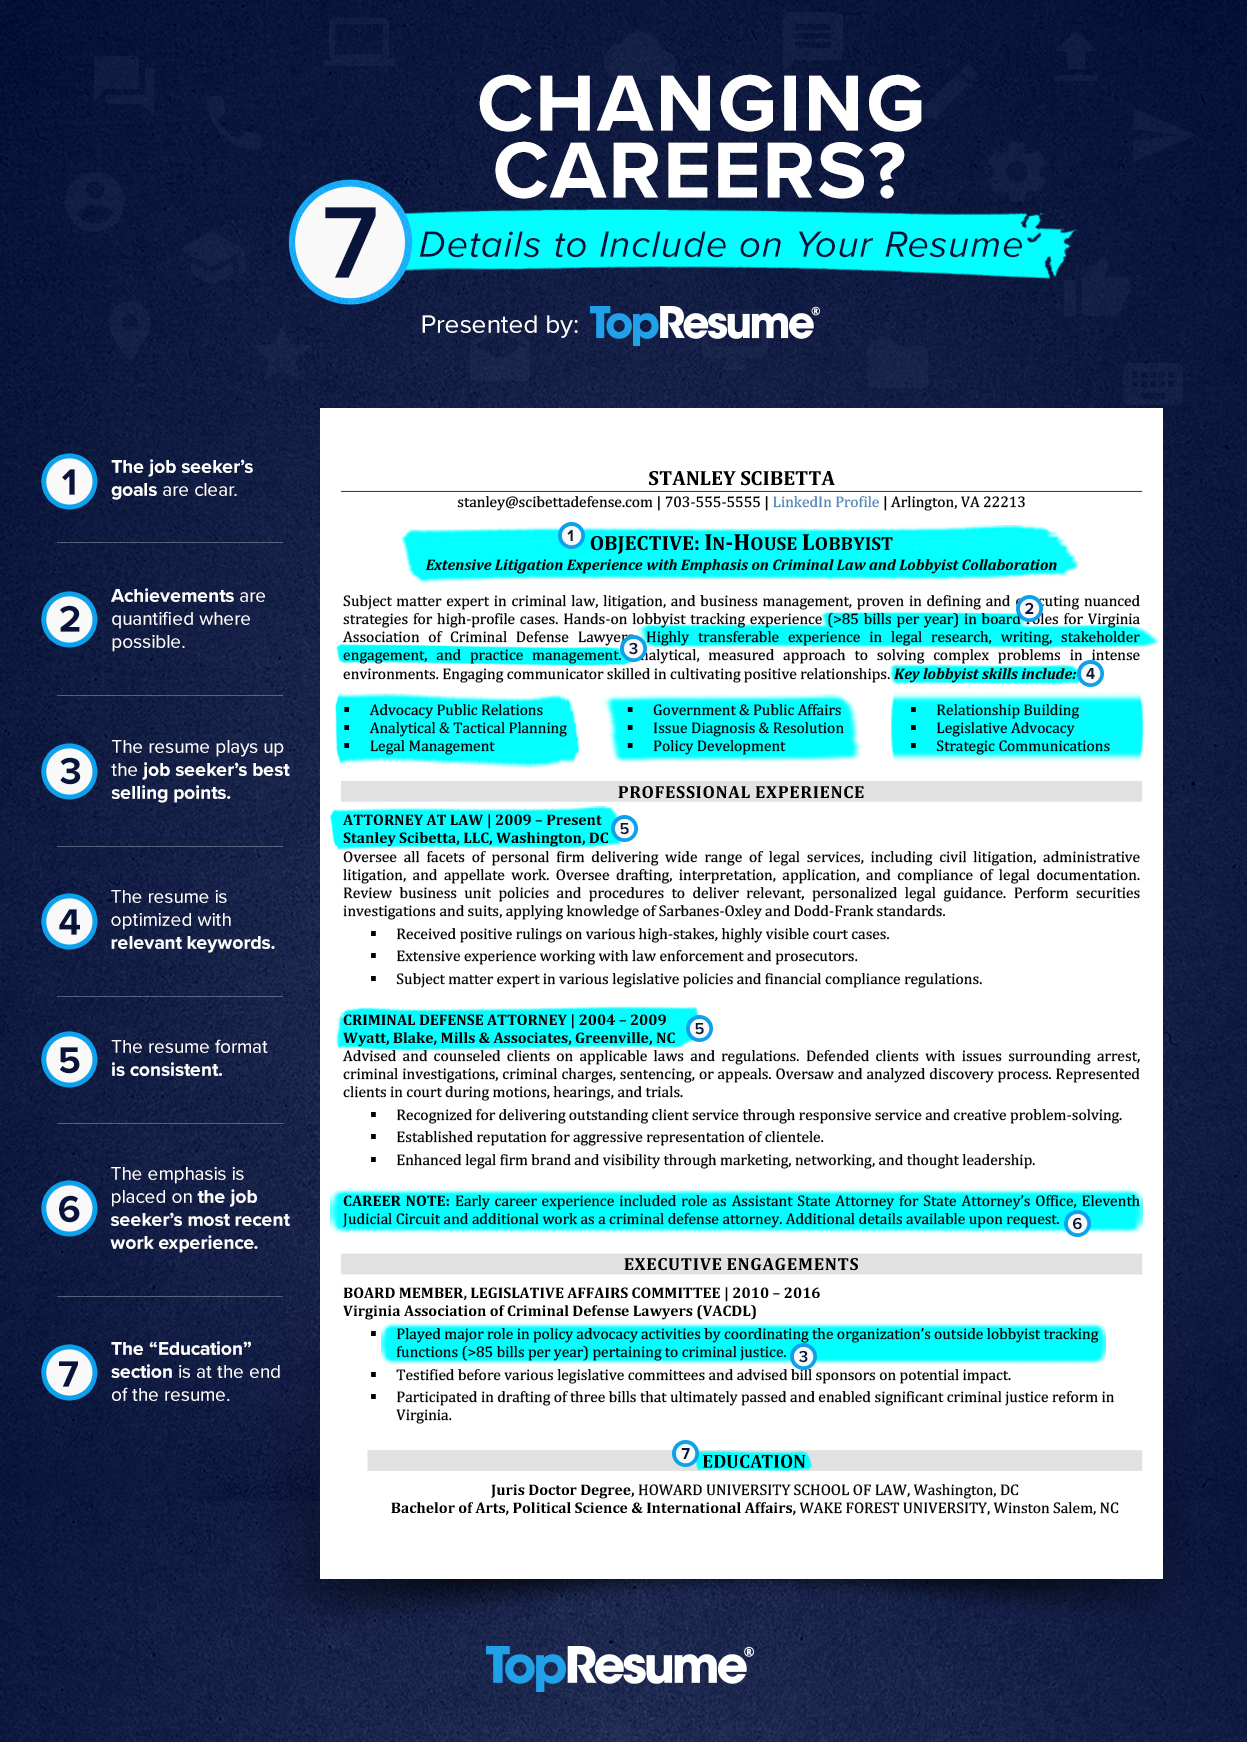 changing careers details to include on your resume topresume career change summary Resume Career Change Resume Summary Example